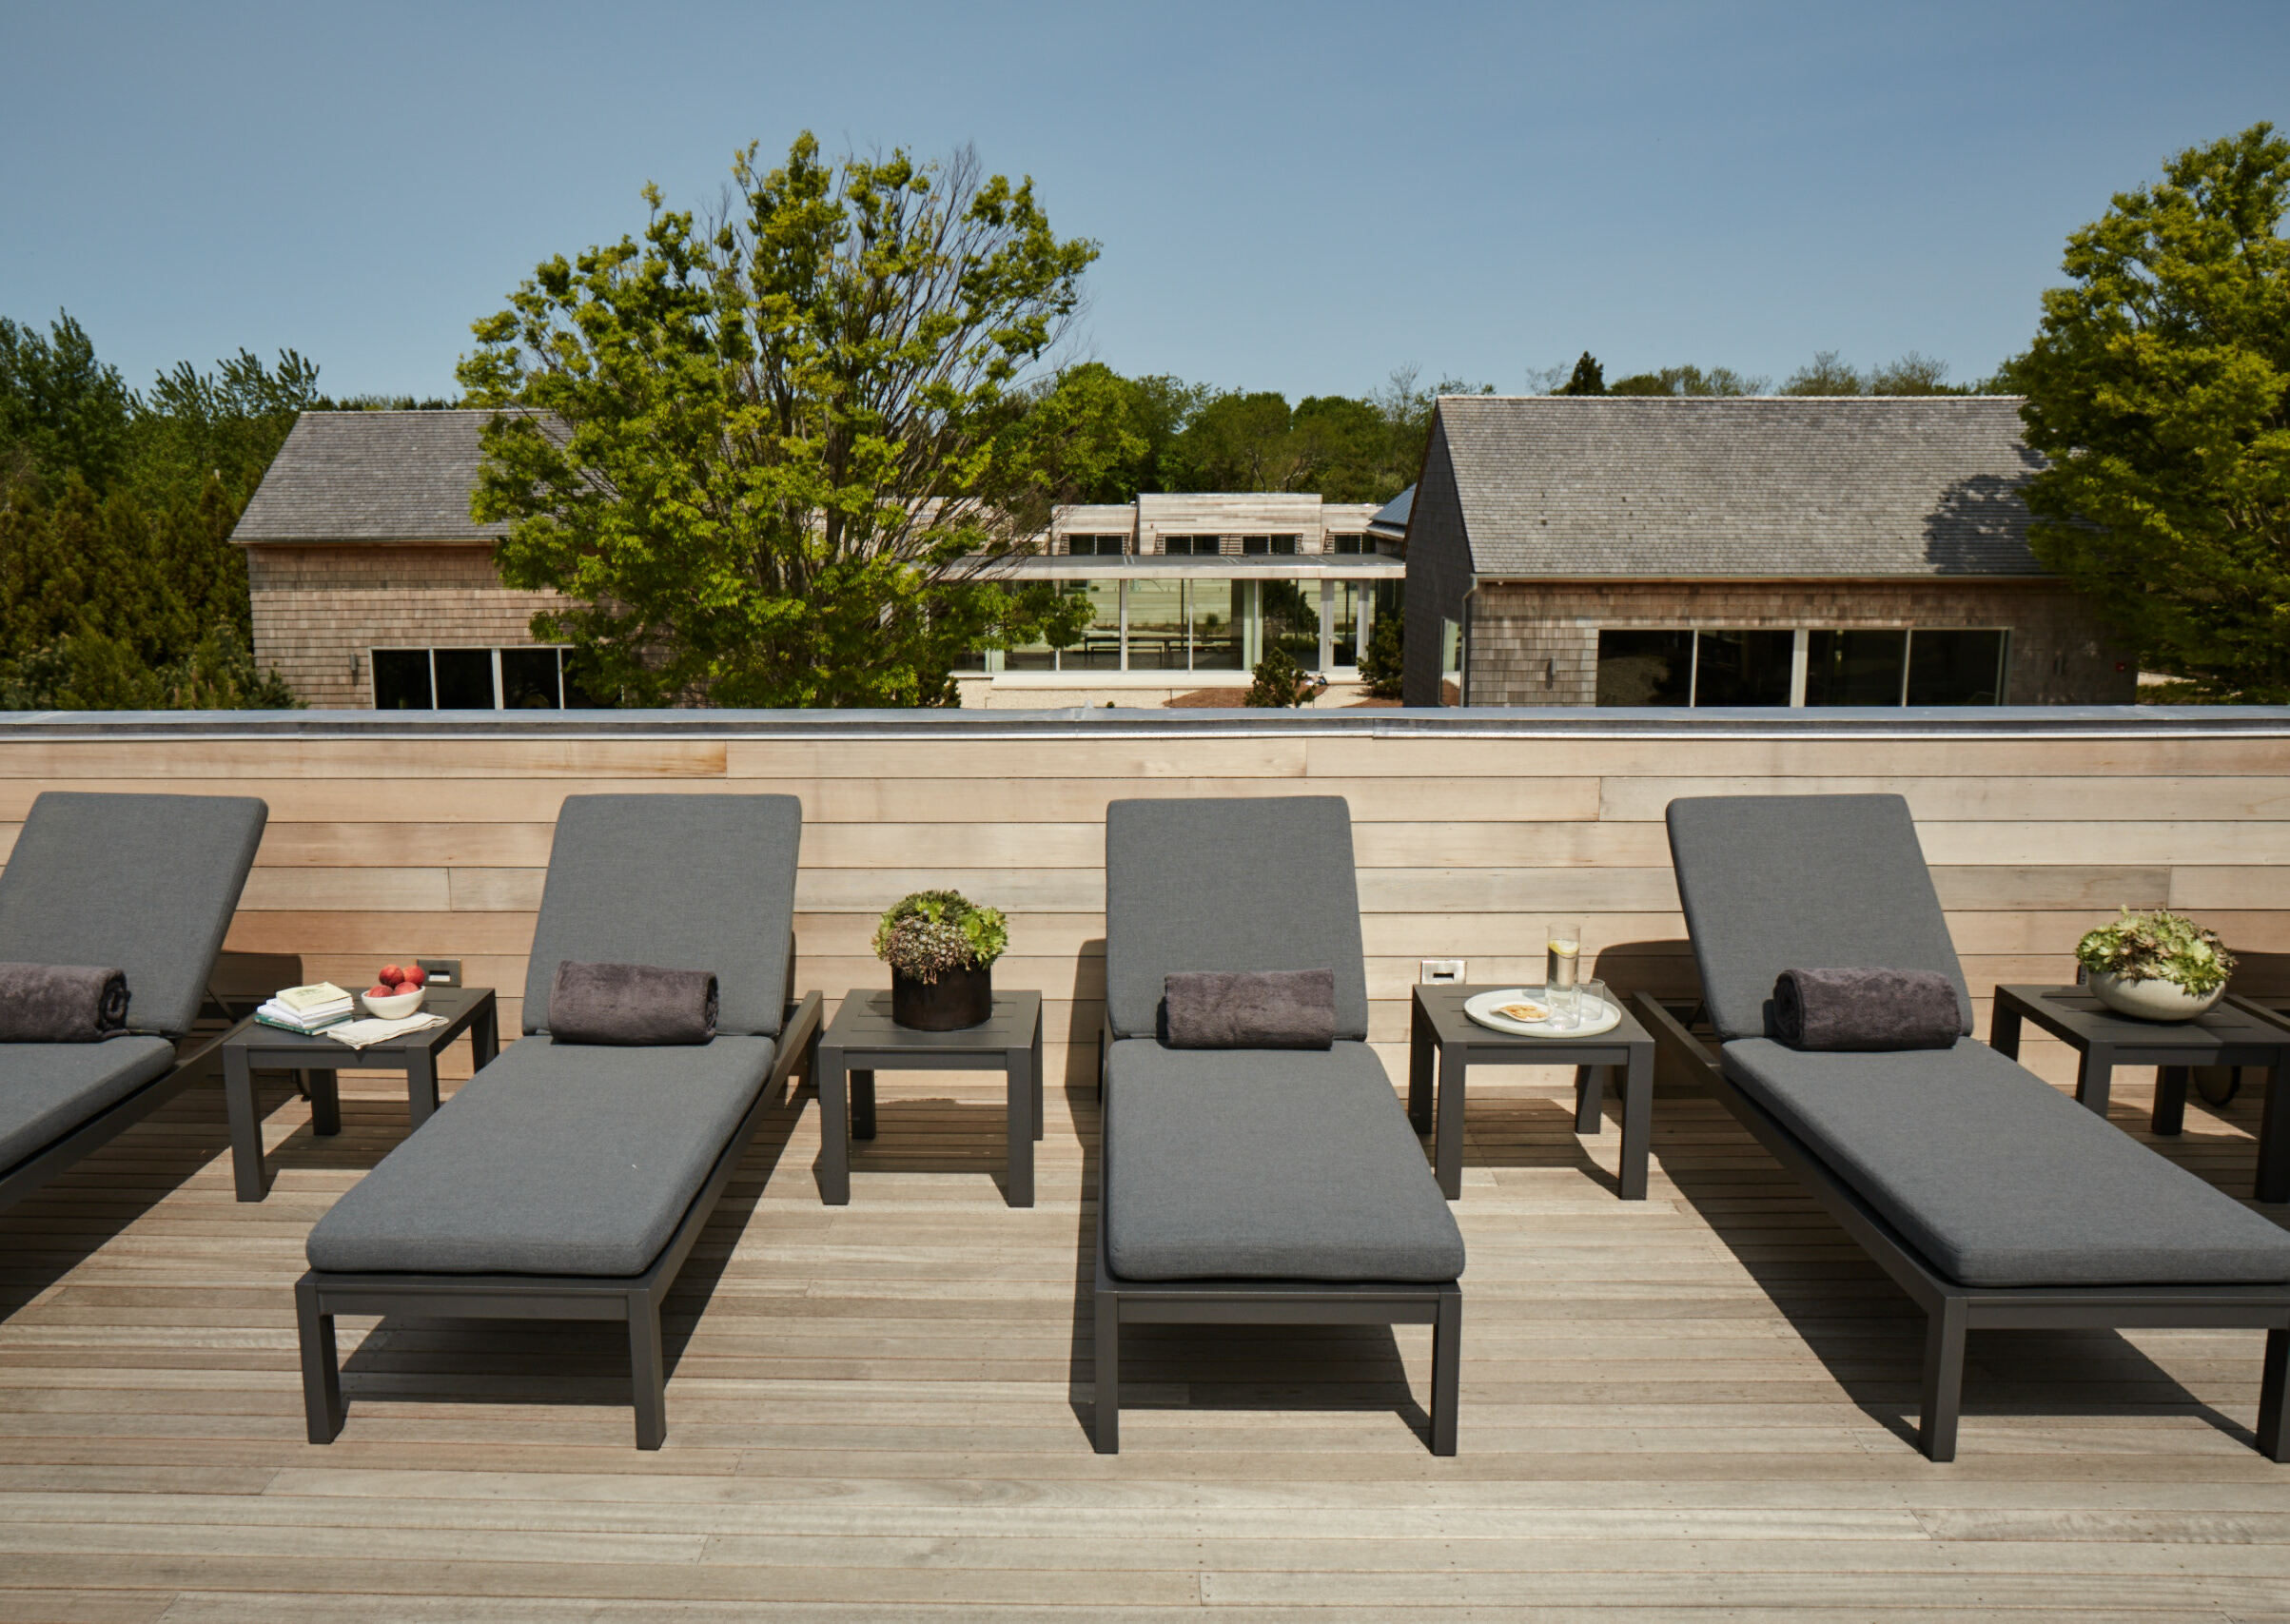 The Shou Sugi Ban House, a luxury spa and retreat in Water Mill, is being offered as a full-season rental in lieu of its normal business this summer.